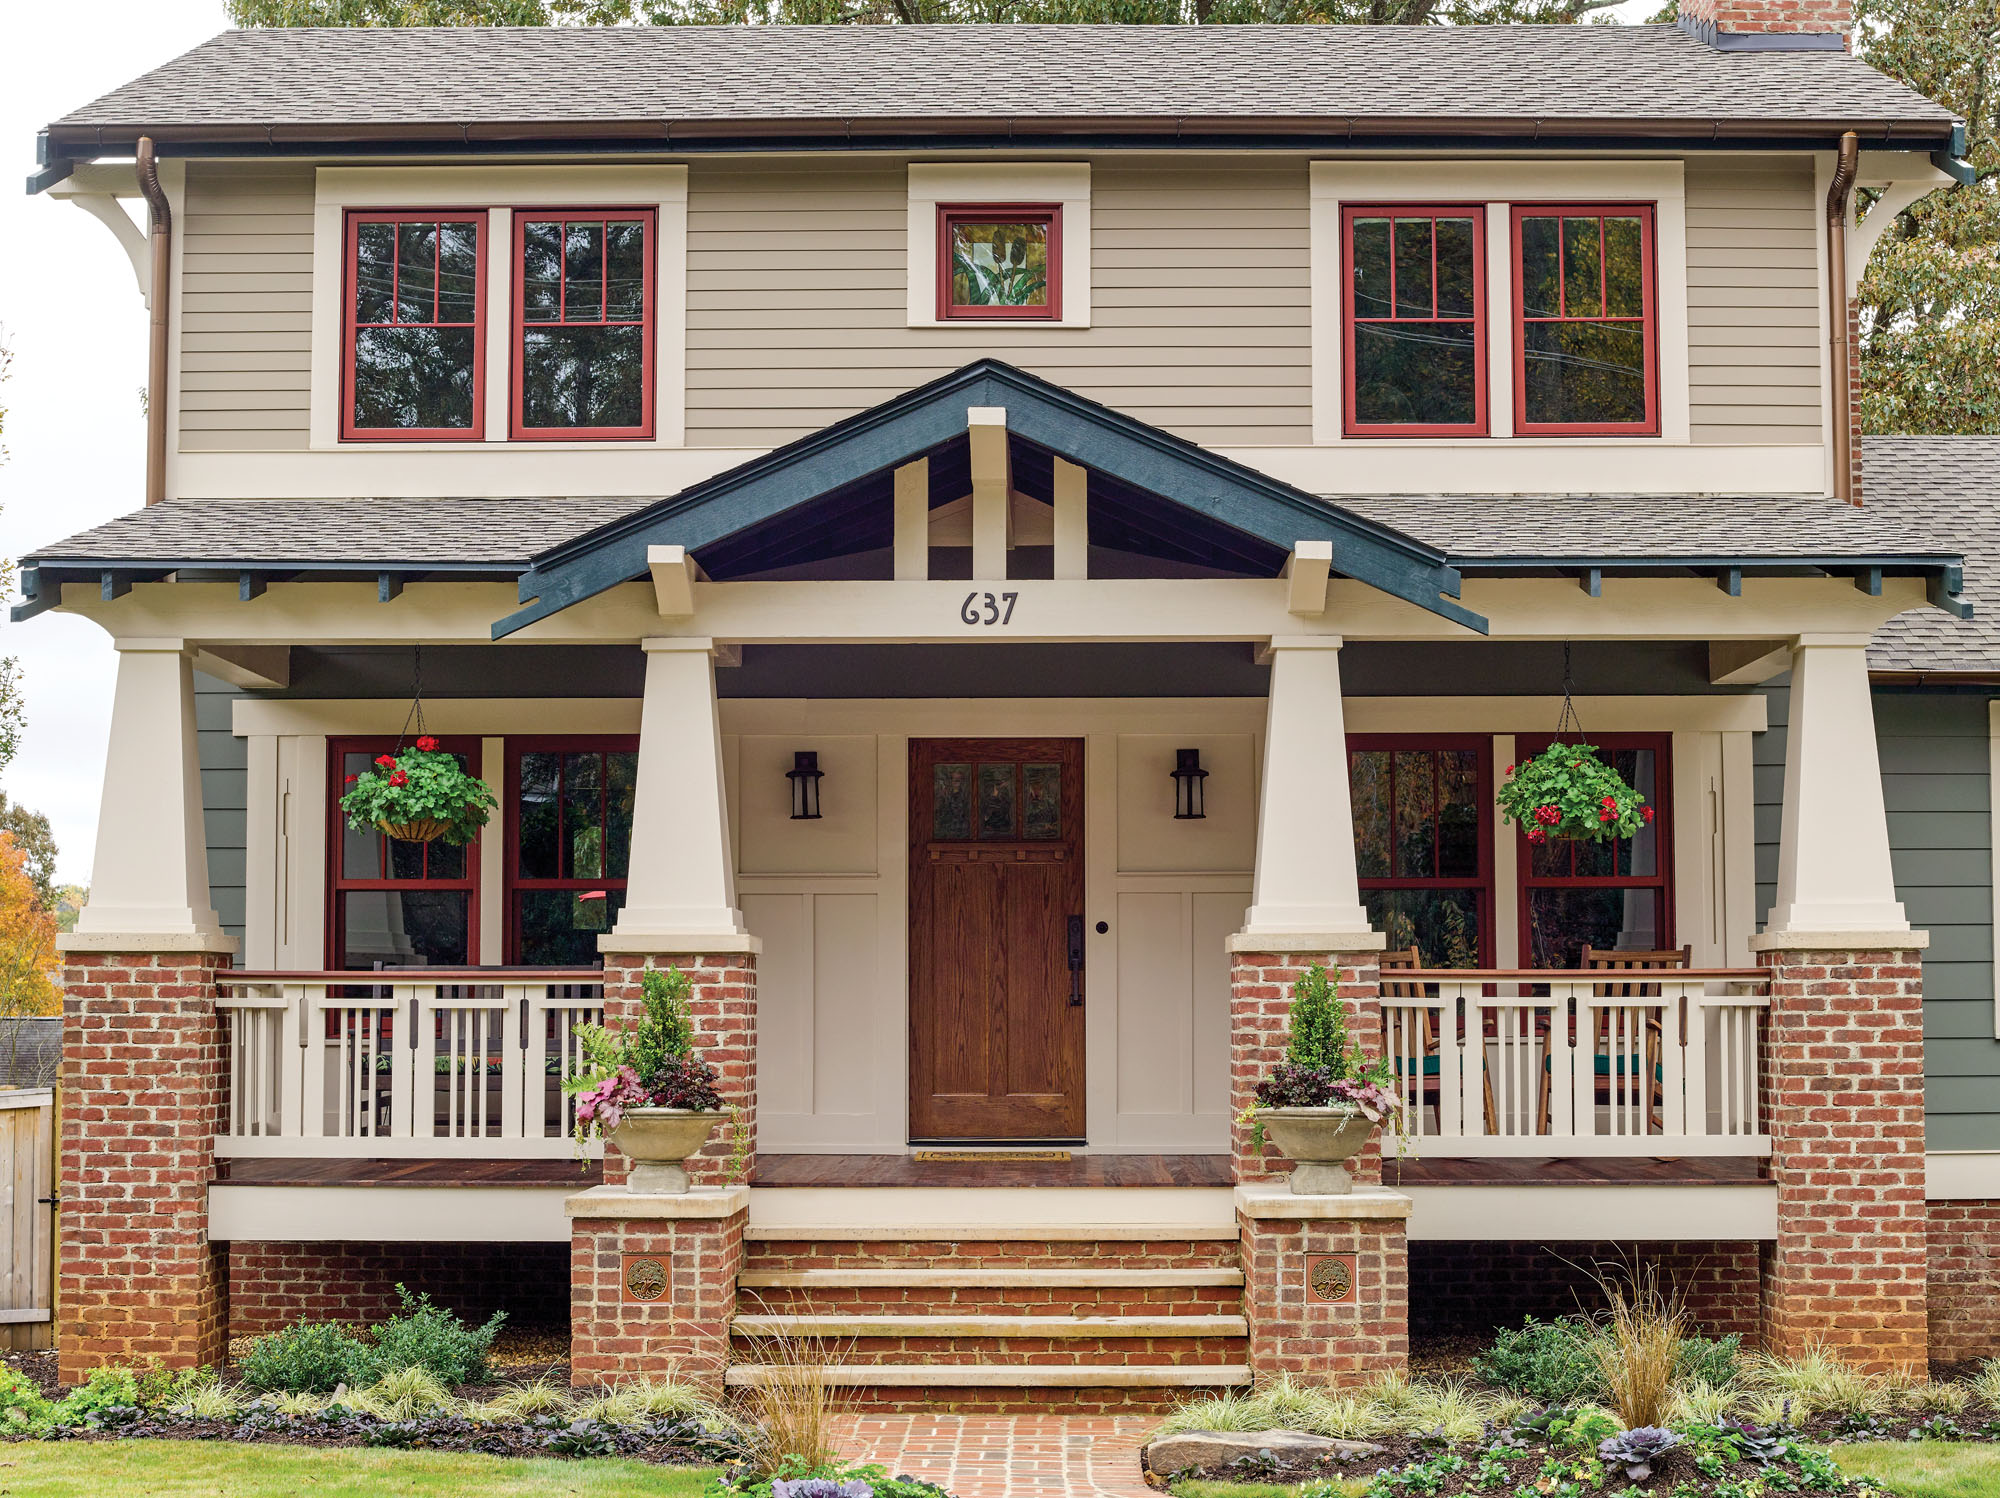 Arts Crafts Architecture And How To Spot Arts Crafts Homes Old House Journal Magazine